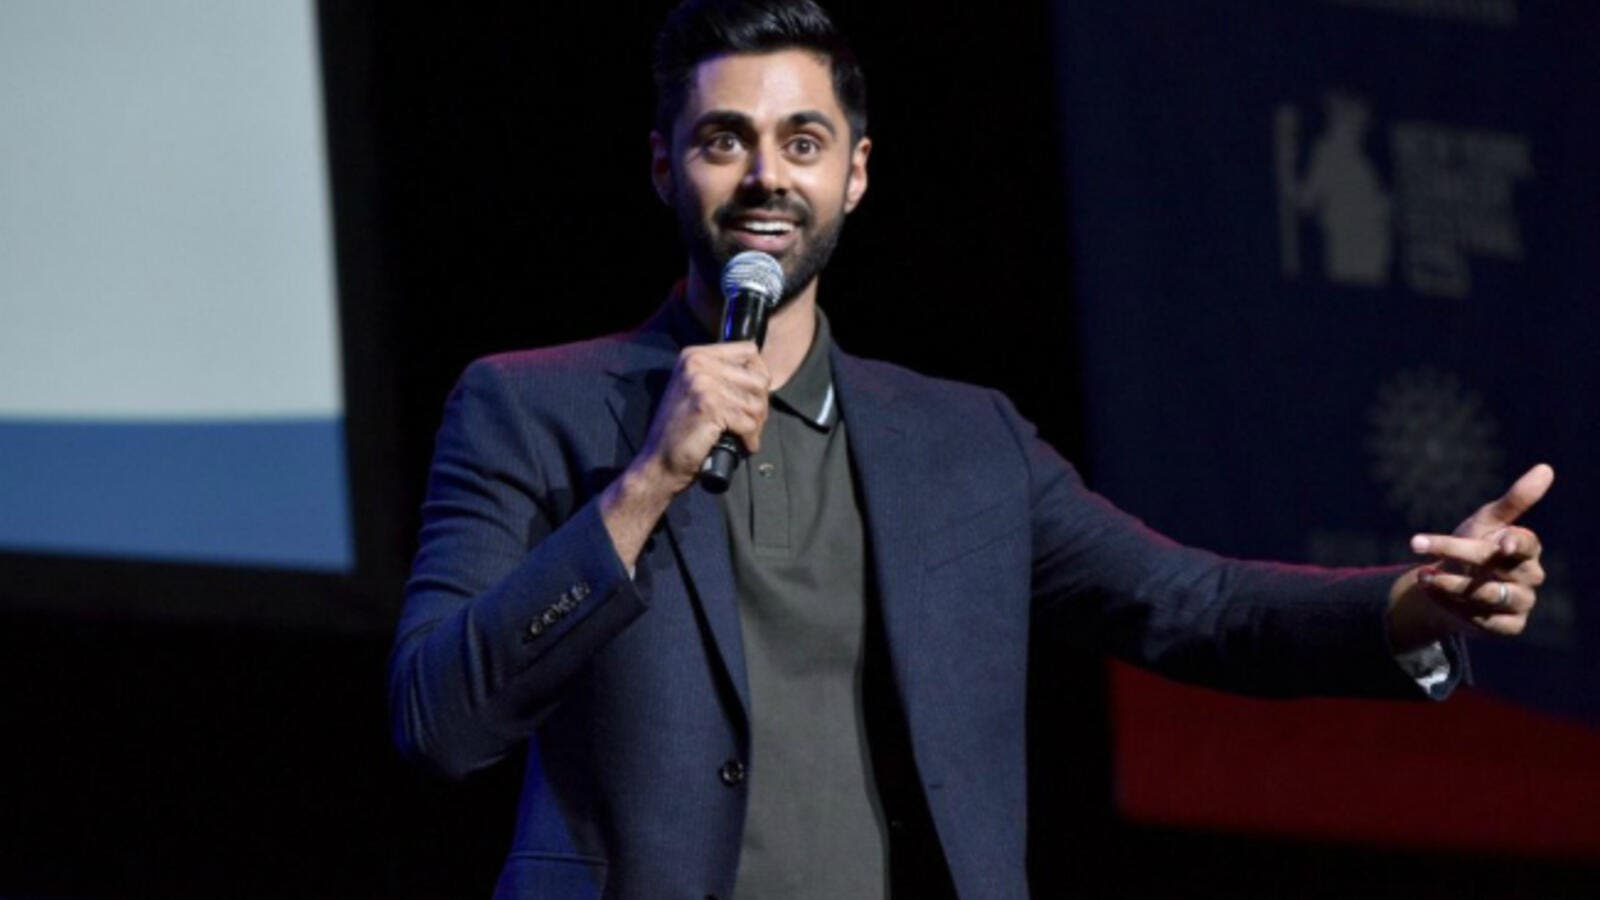 Minhaj is known as the senior correspondent on The Daily Show from 2014 to 2018. (Source: tumblr)